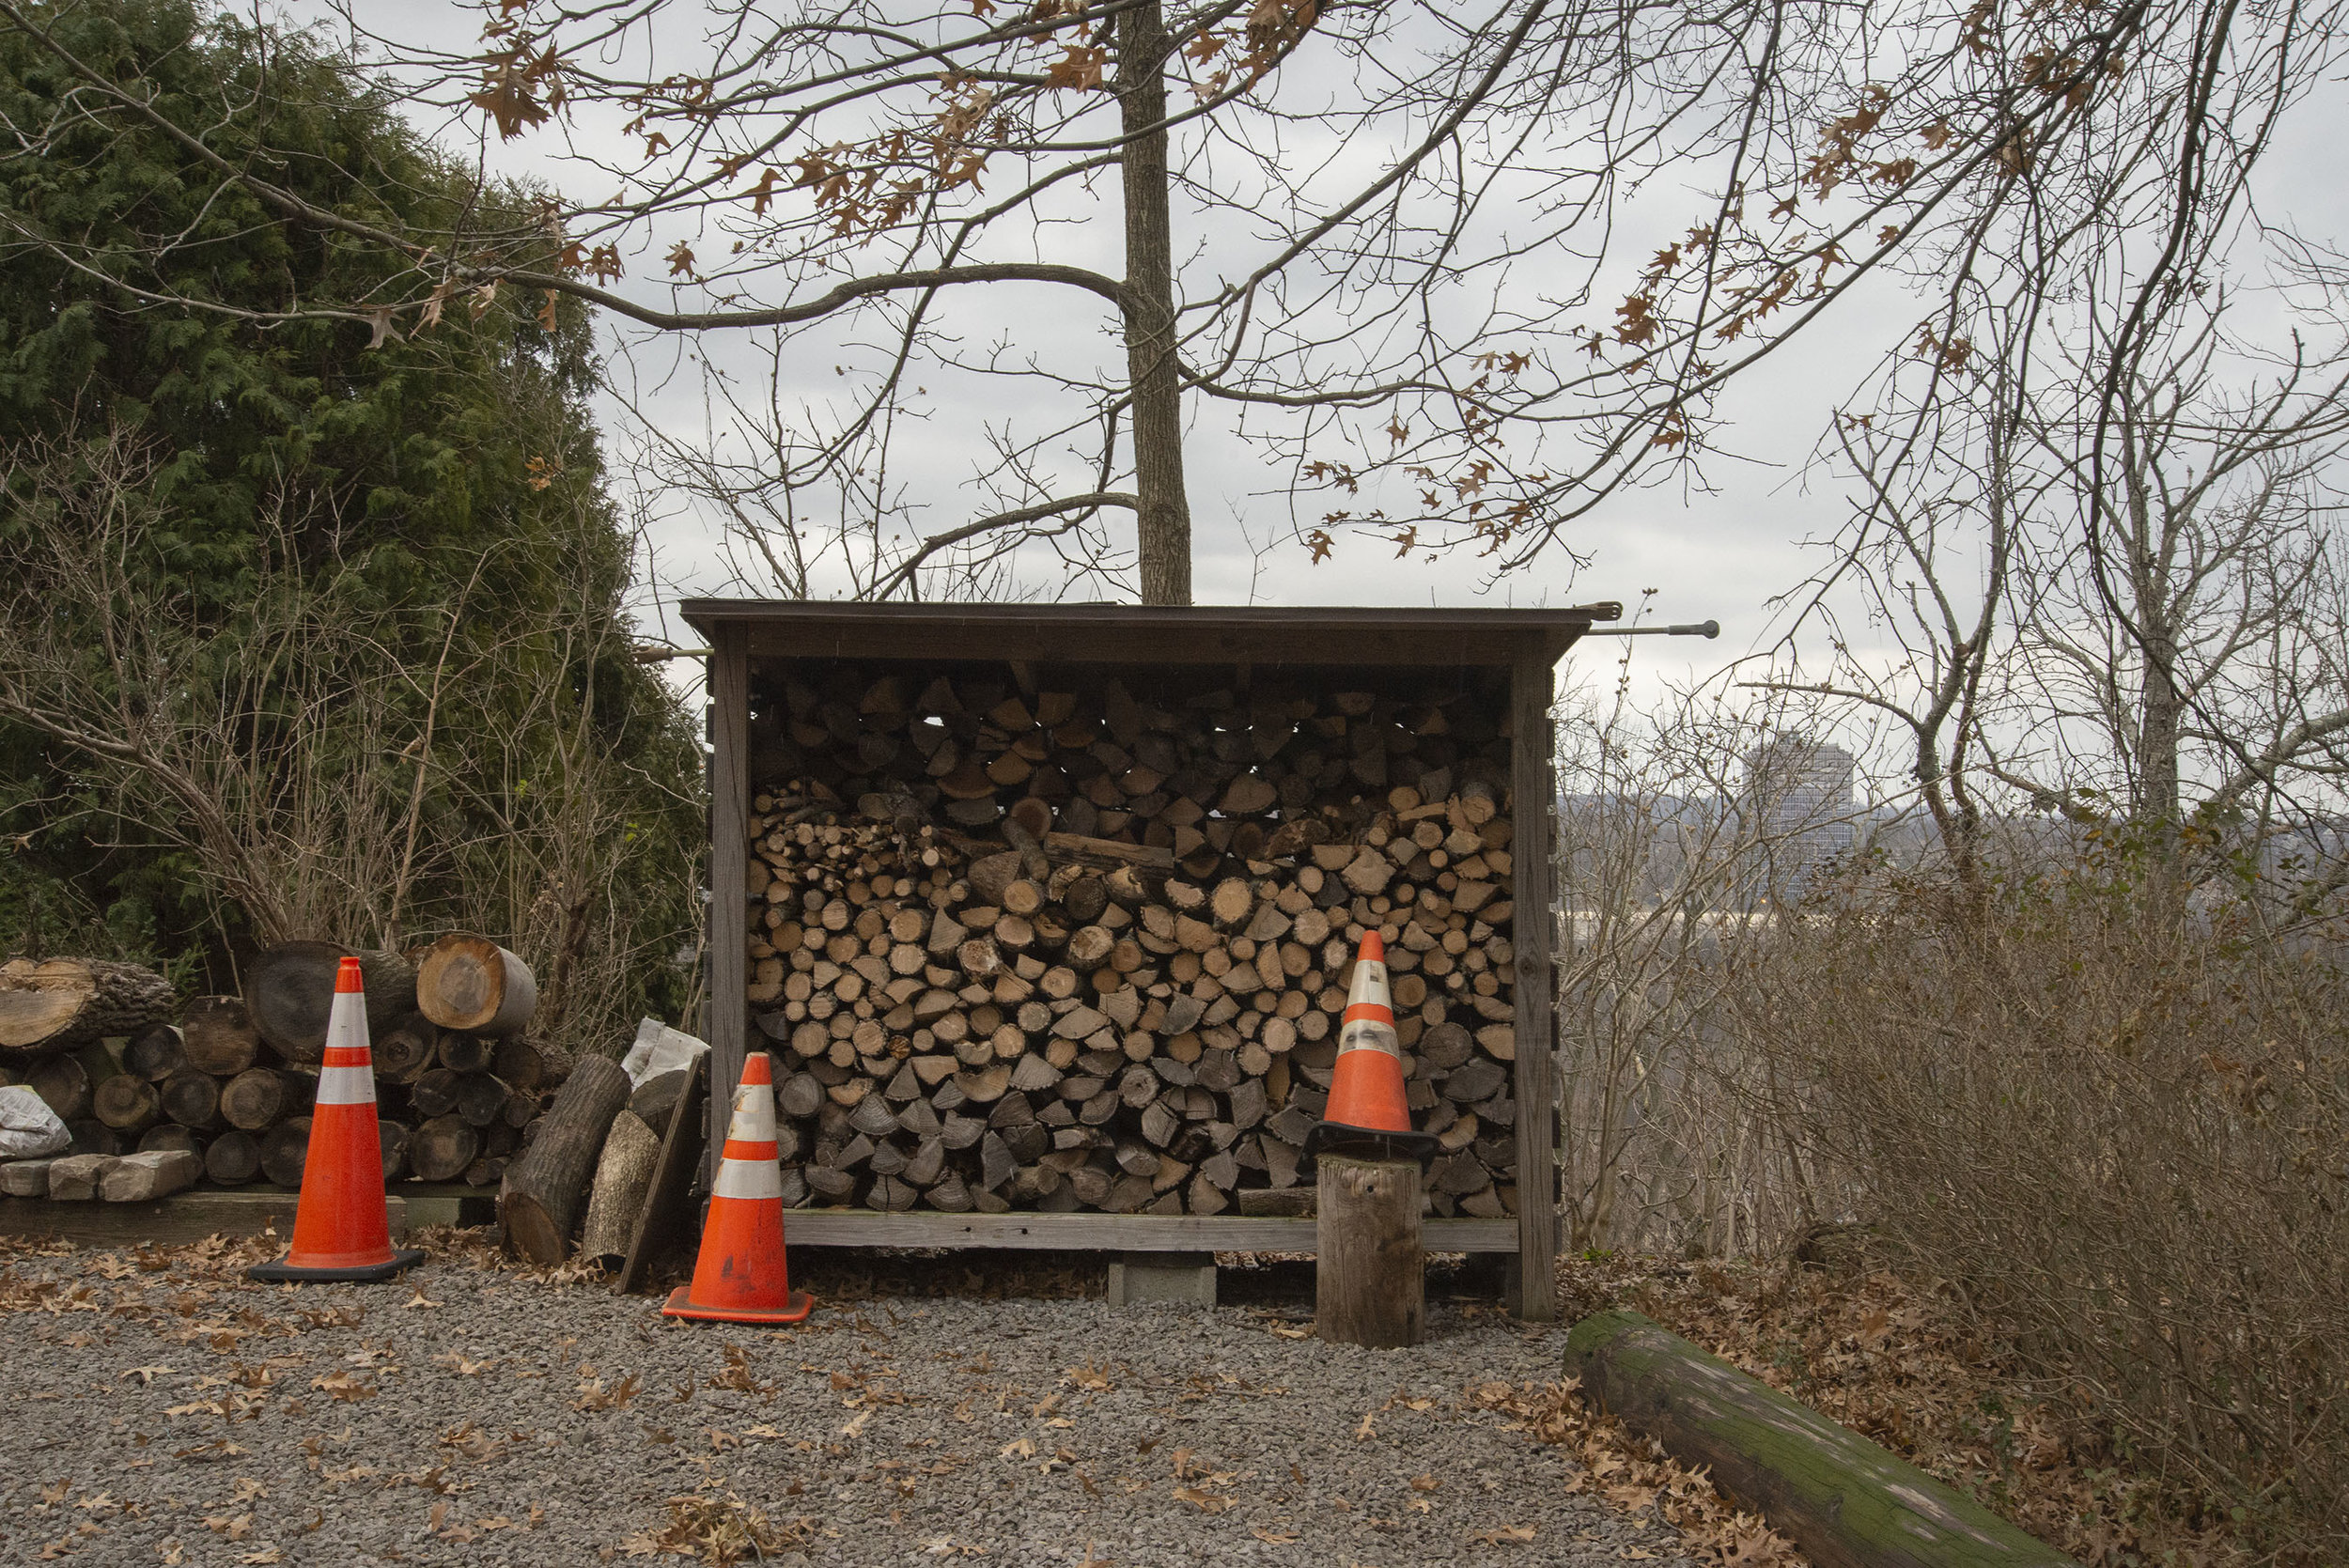 Wood Pile above the Allegheny